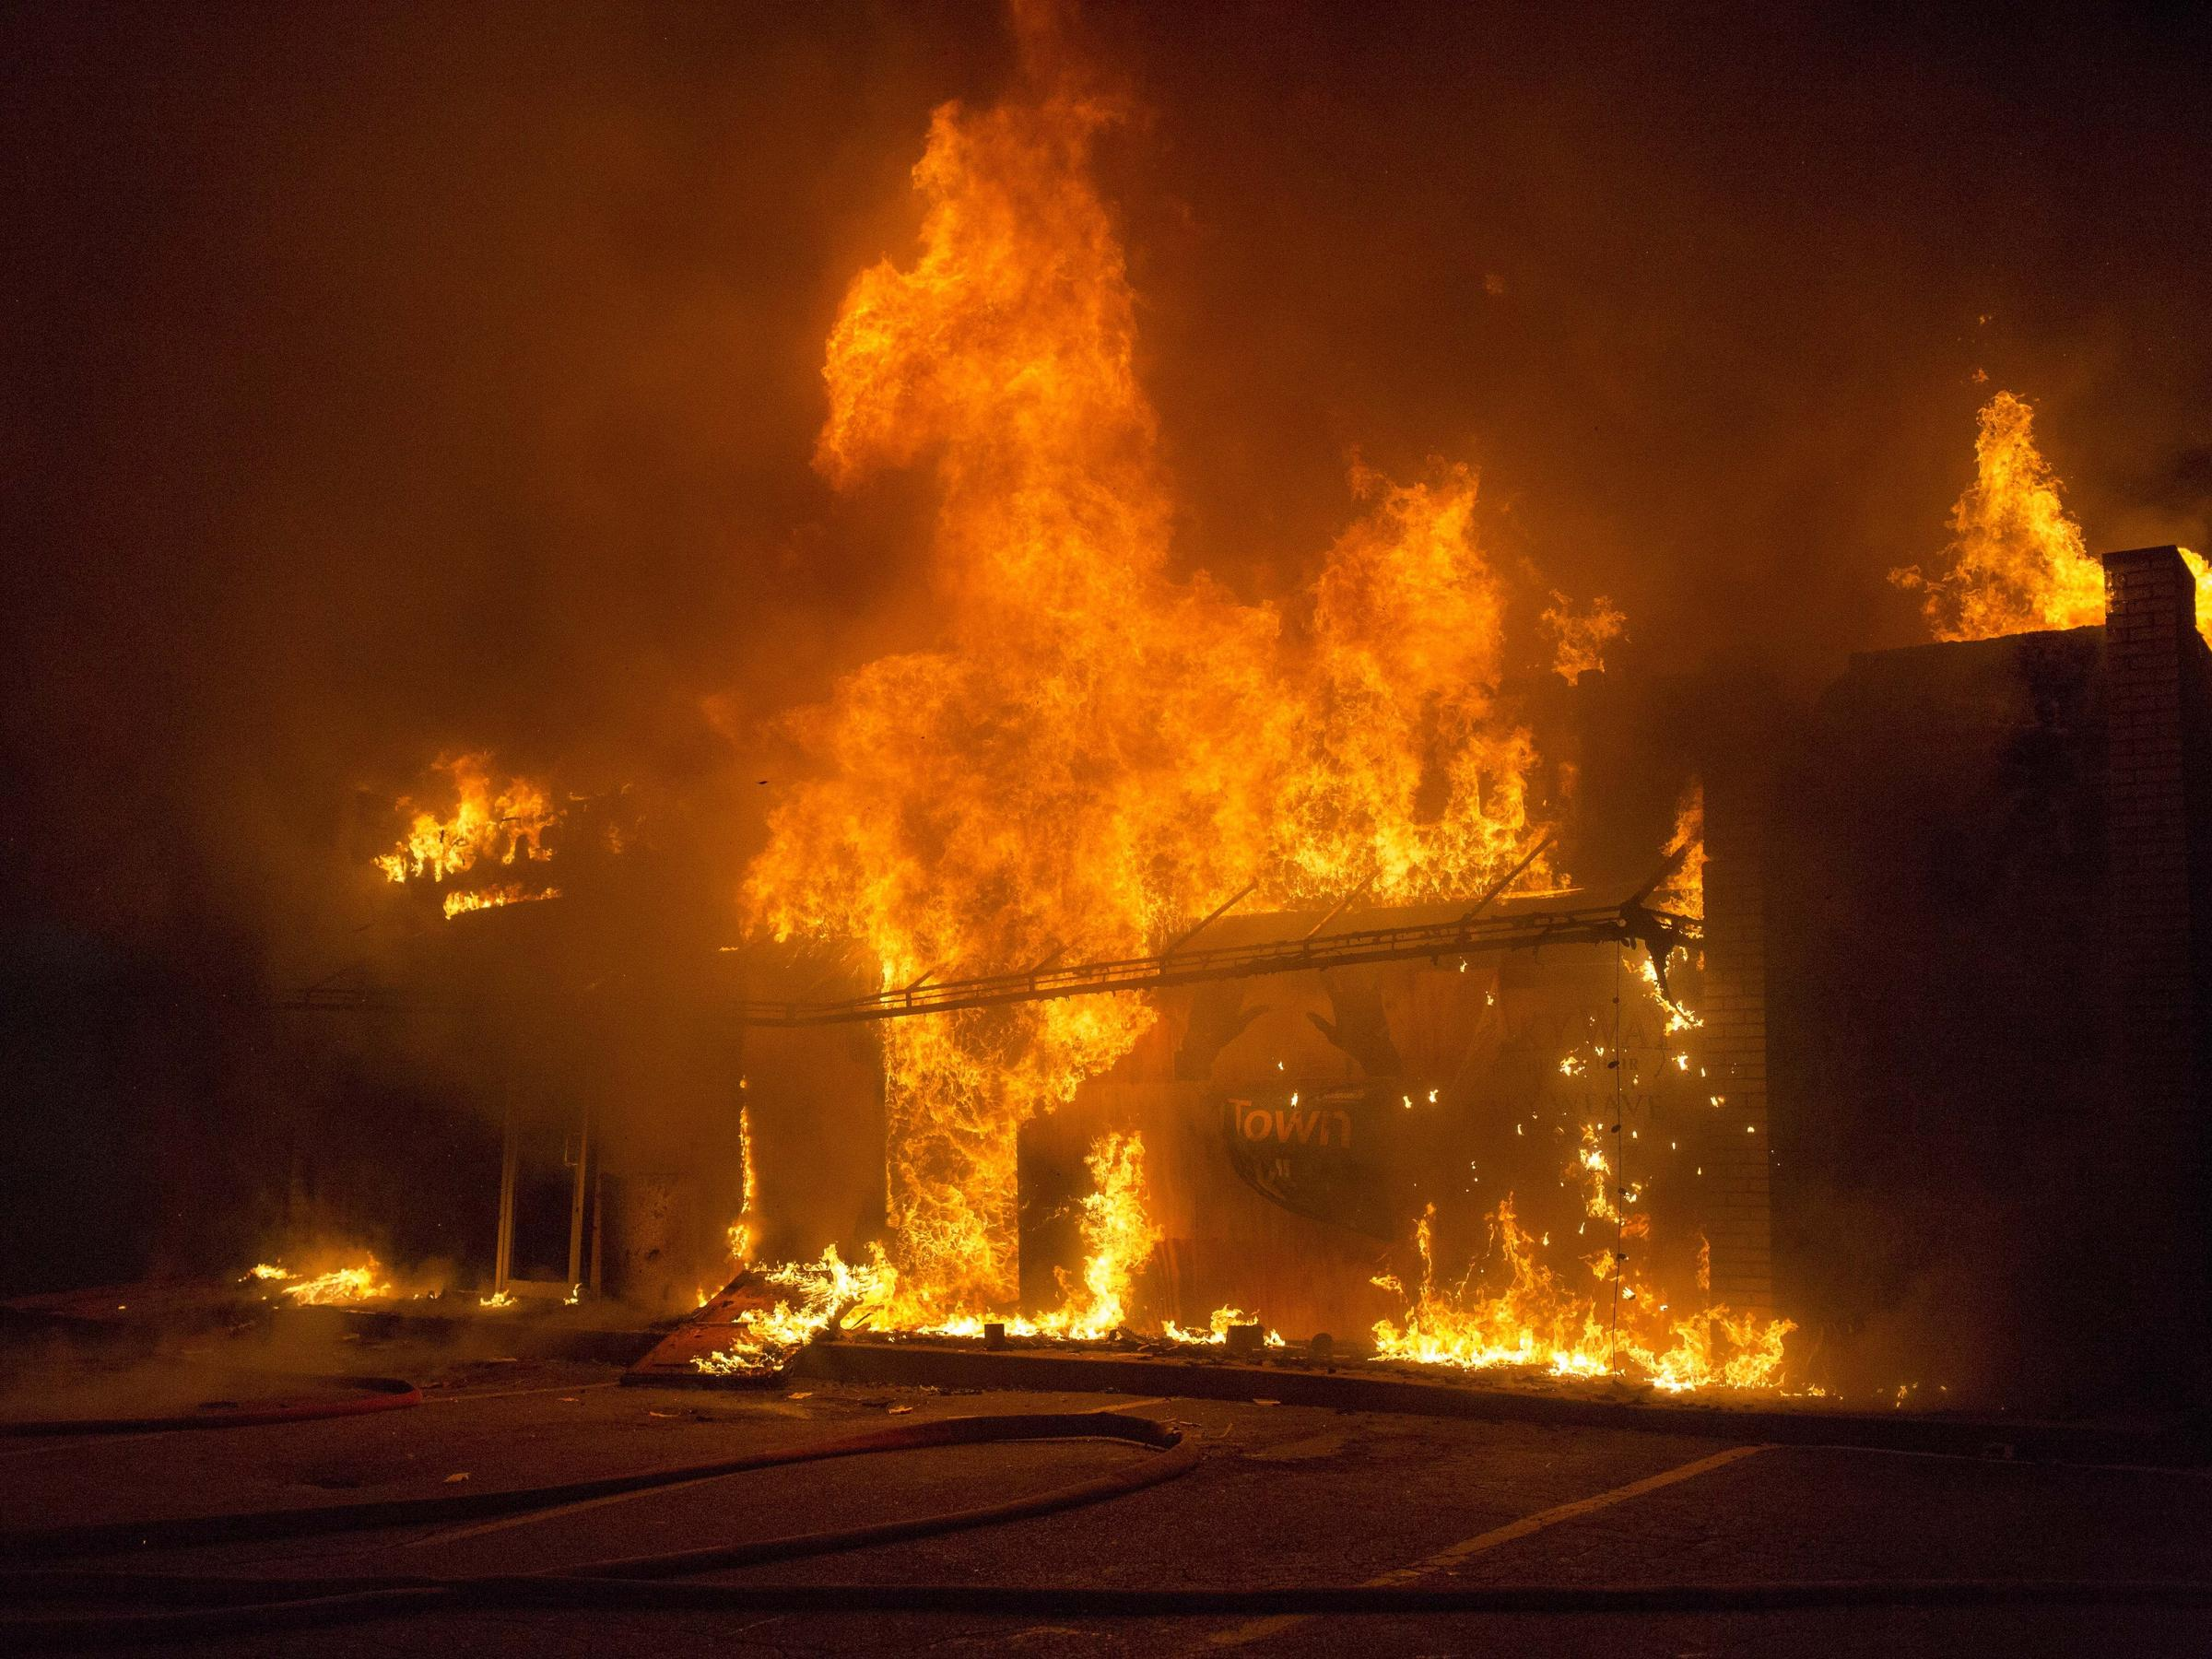 A business burns during the riots in Ferguson after the grand jury verdict